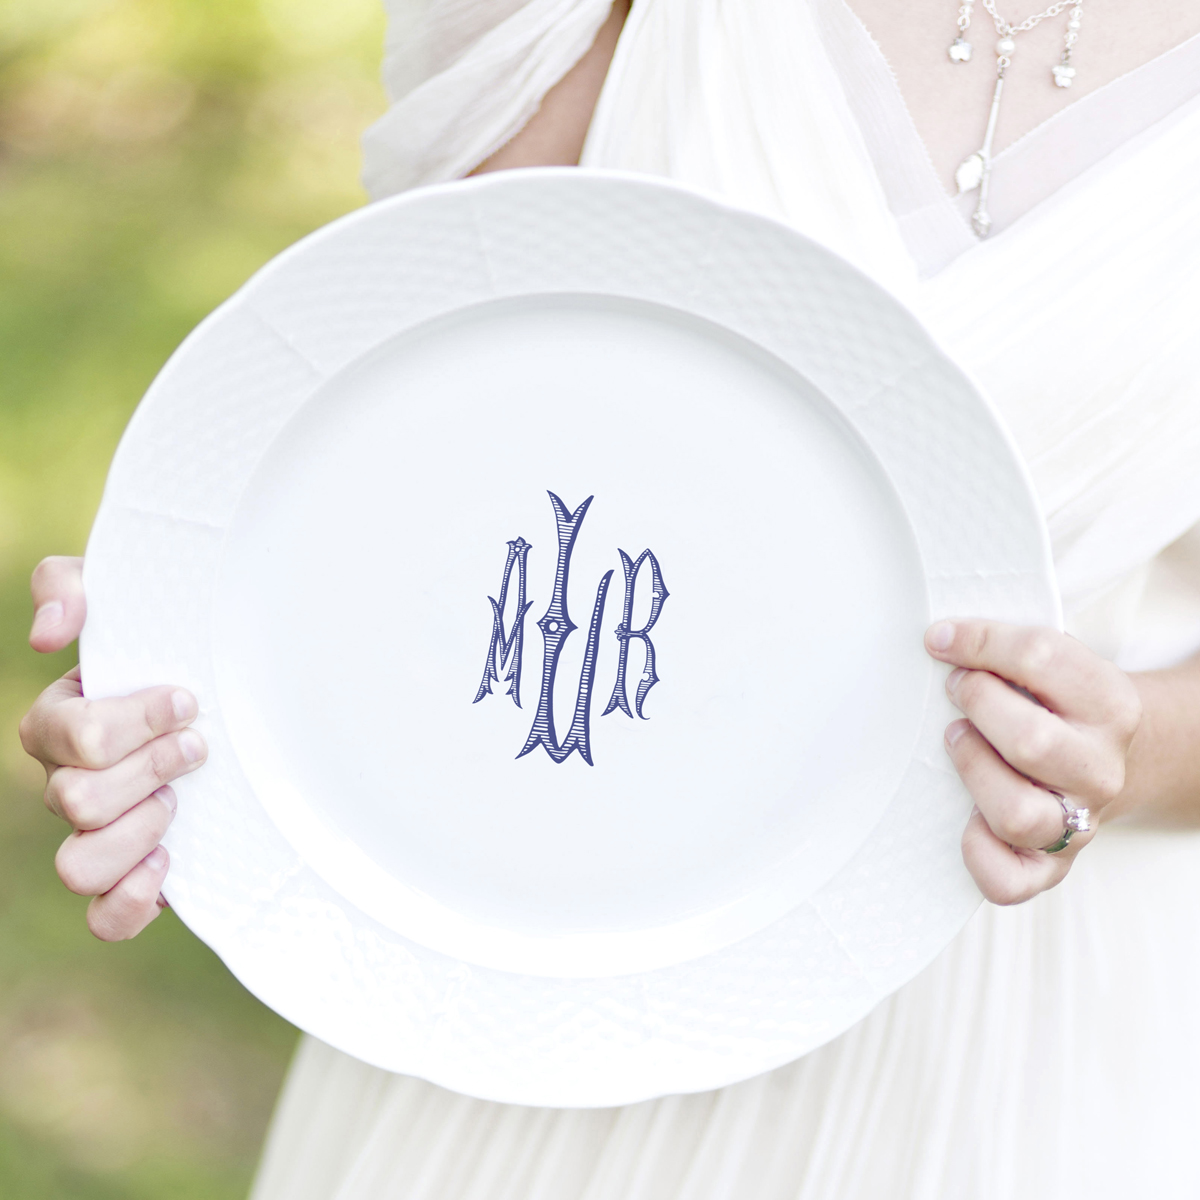 Sasha Nicholas Plates China Crest Monogrammed Monogram Custom Dish Dishes Porcelain Dinnerware Wedding Gift Registry Bridal Heirloom Meaningful *